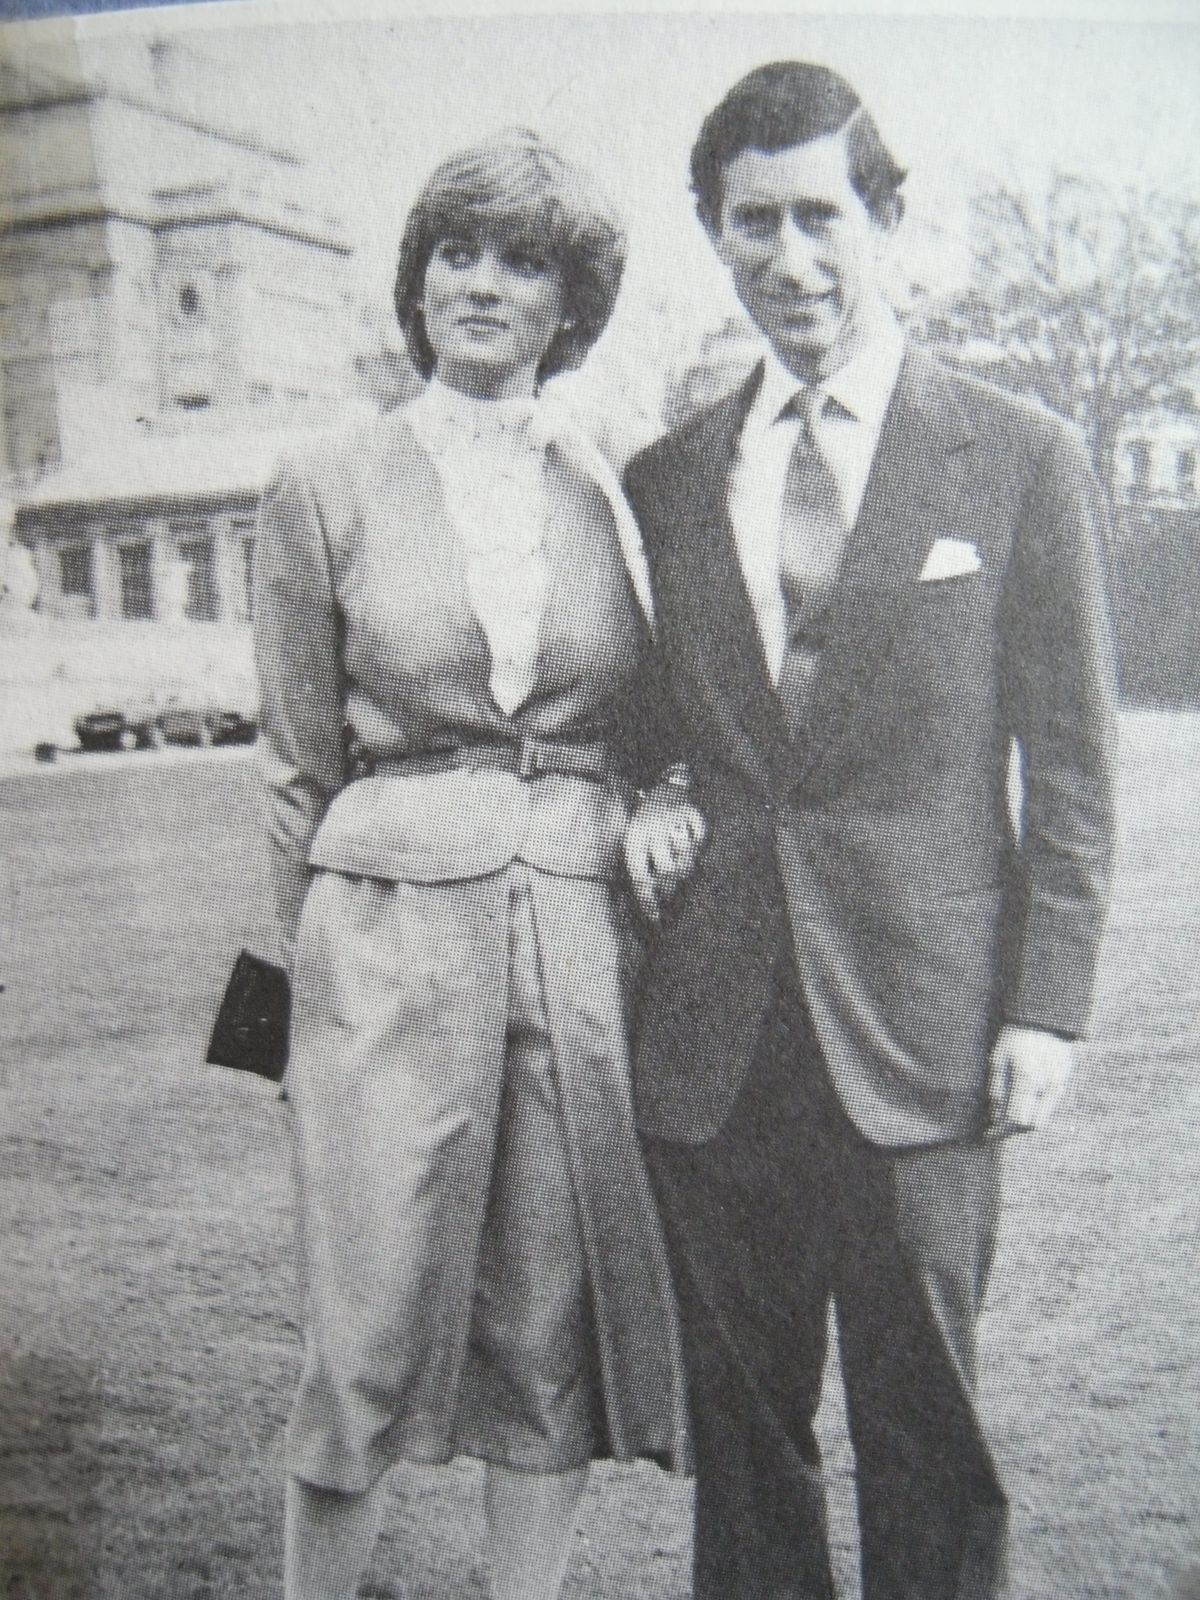 February 24, 1981 Prince Charles and his fiancé, Lady